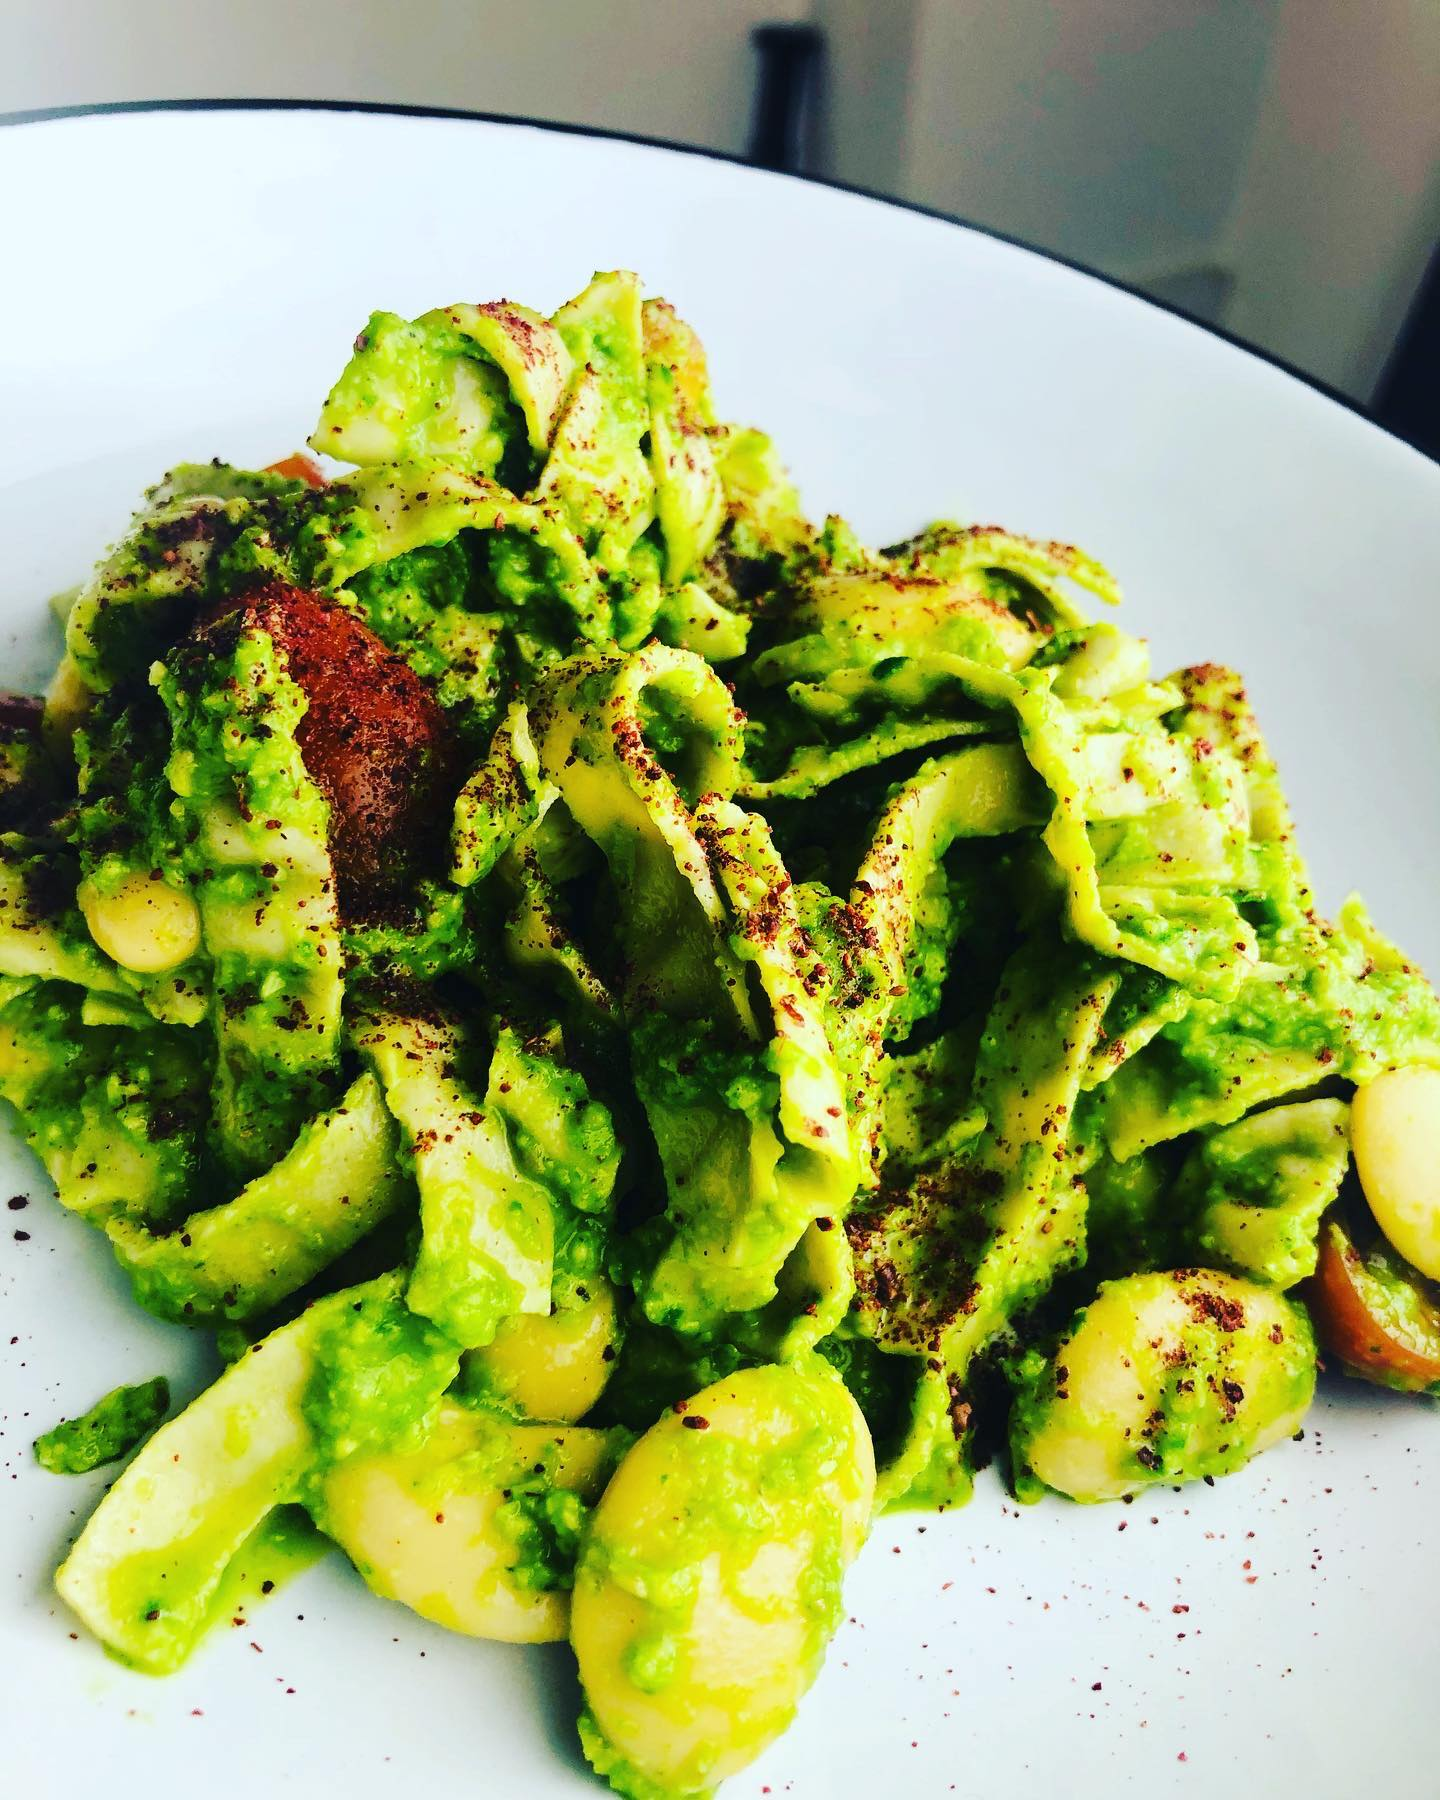 10-Minute Creamy Avocado & Lime Pasta